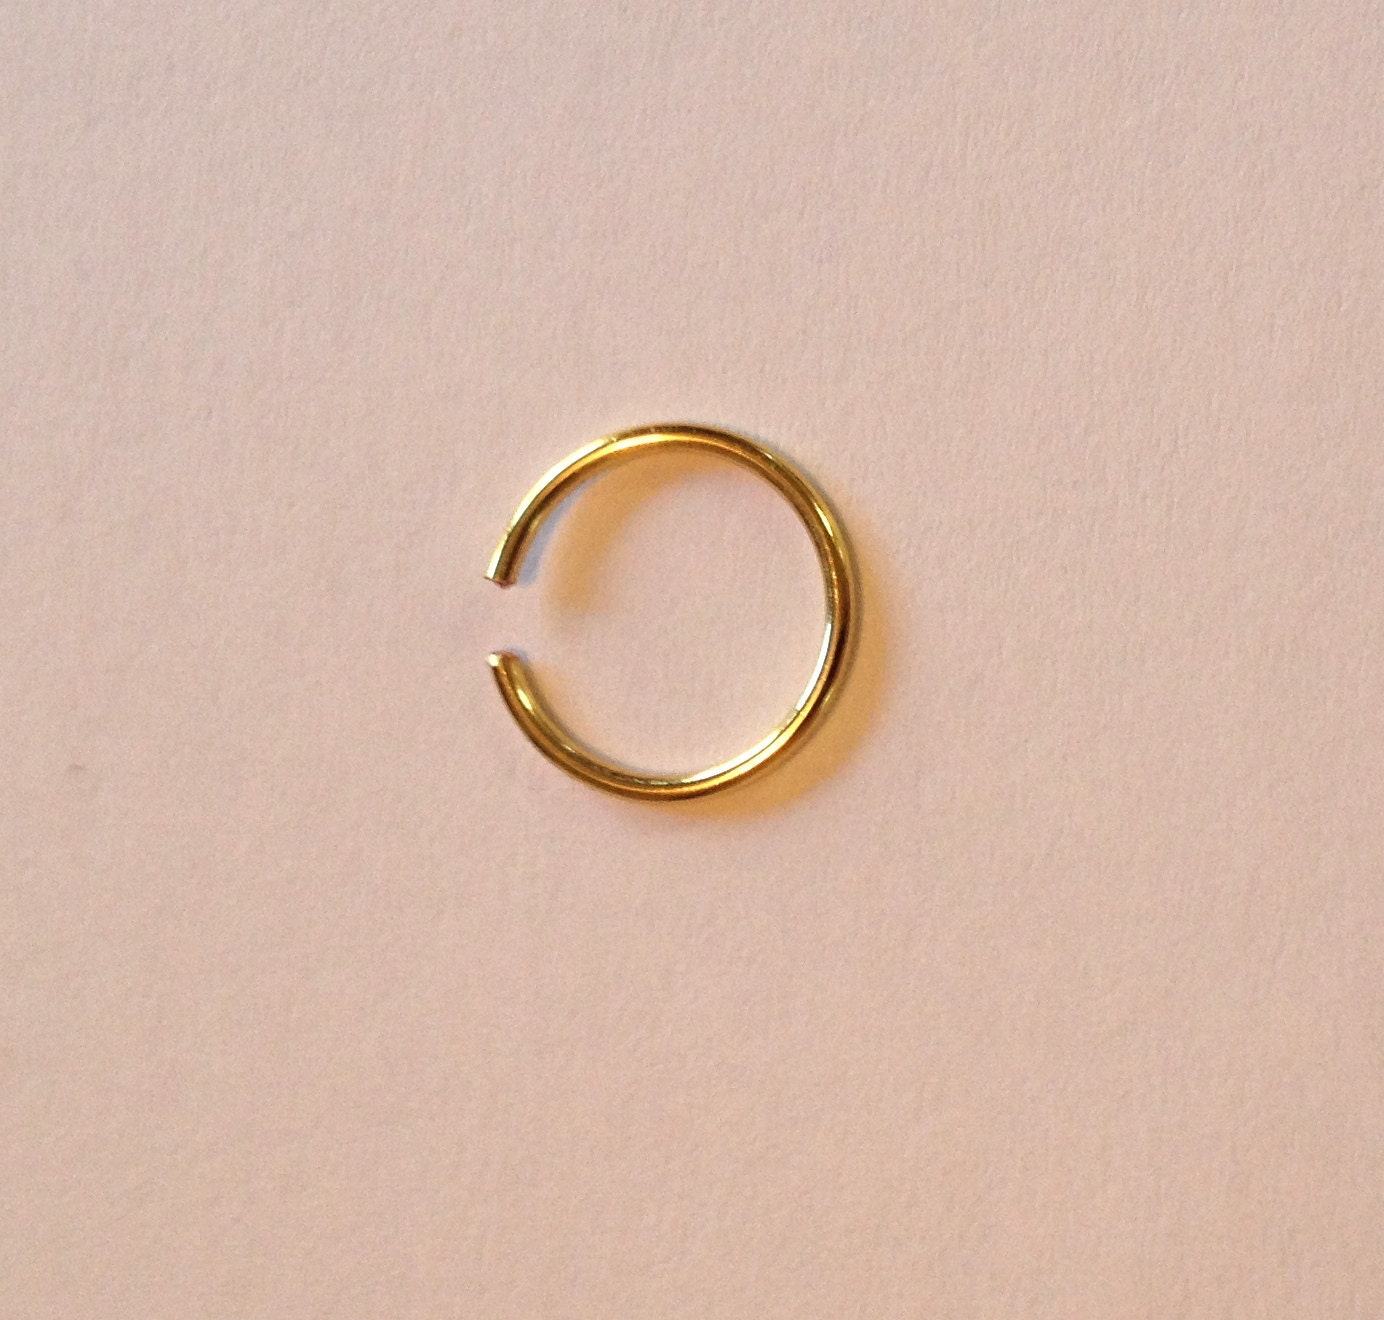 nose tragus cartilage eyebrow ring piercing by